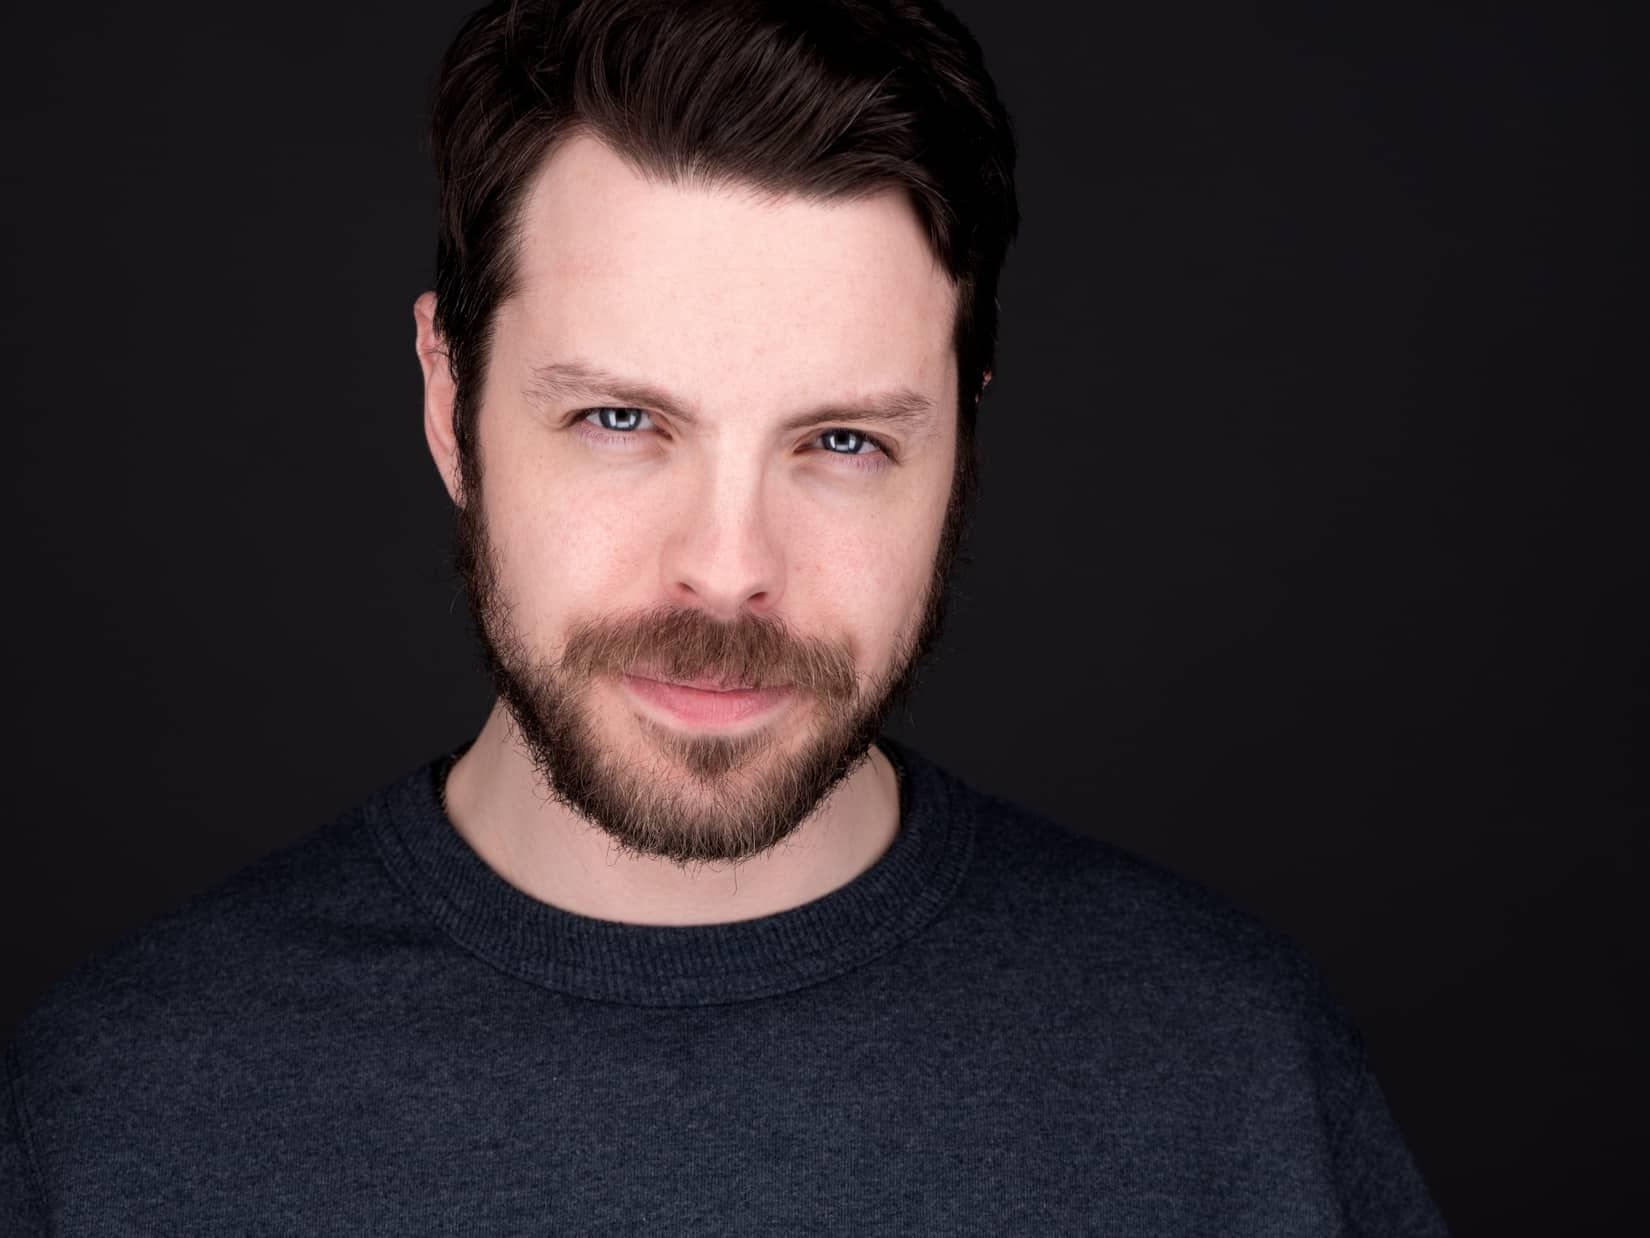 It's all about the Squinch says Peter Hurley - Headshot Photos